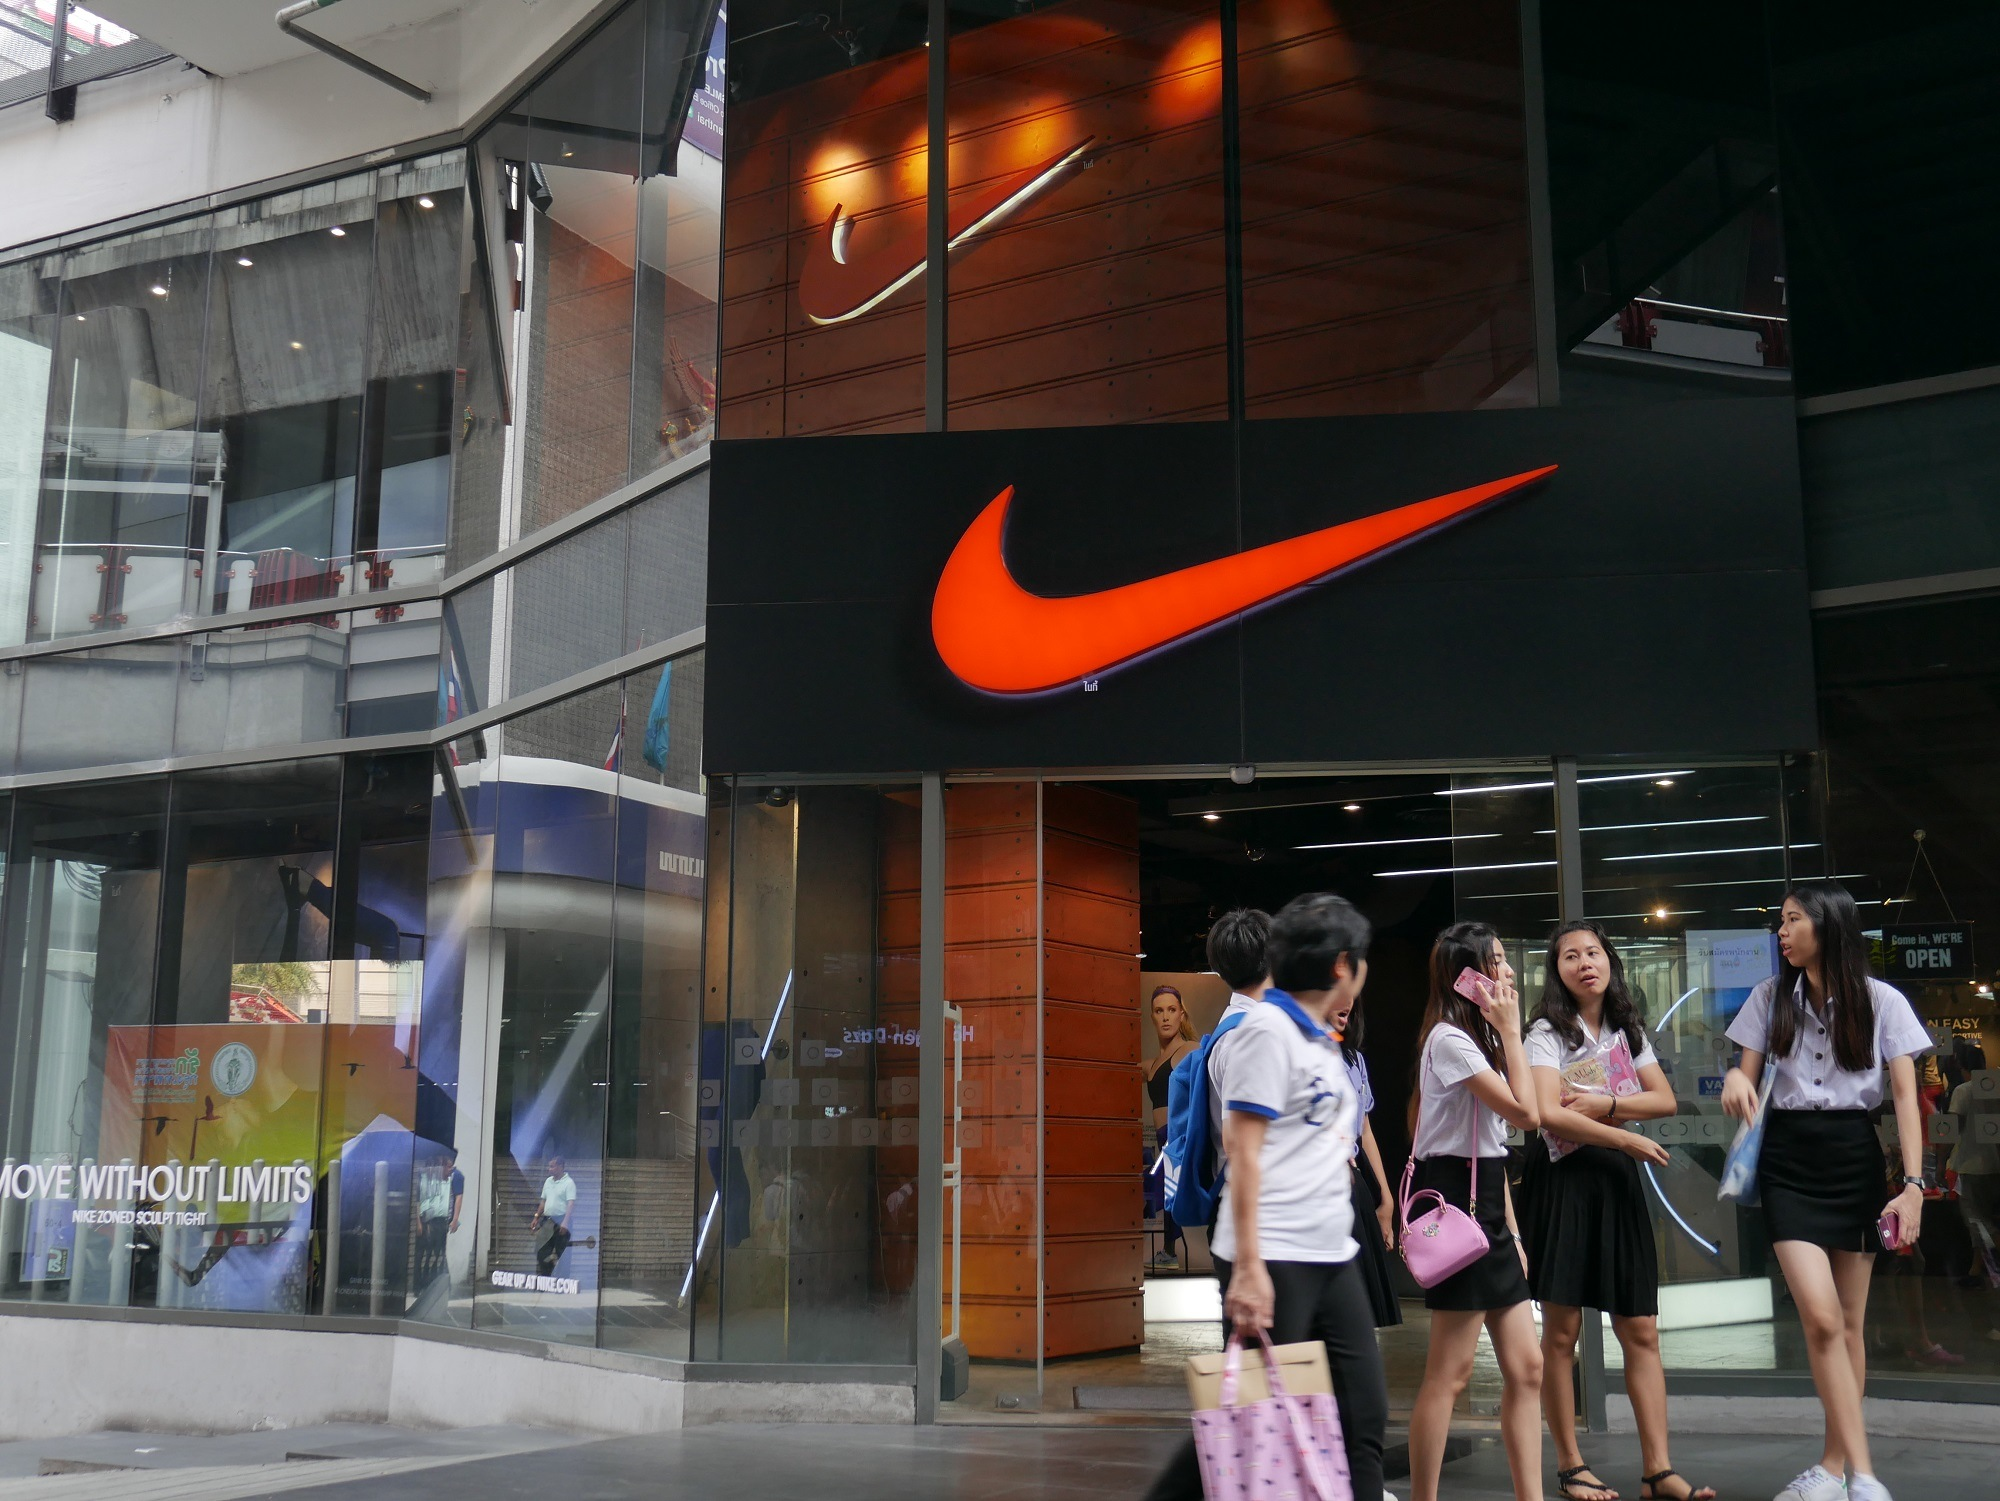 Bangkok, Thailand-February 19, 2016: Exterior view of a Nike shop in the Siam Square area of Bangkok, Thailand. People walk around the area.